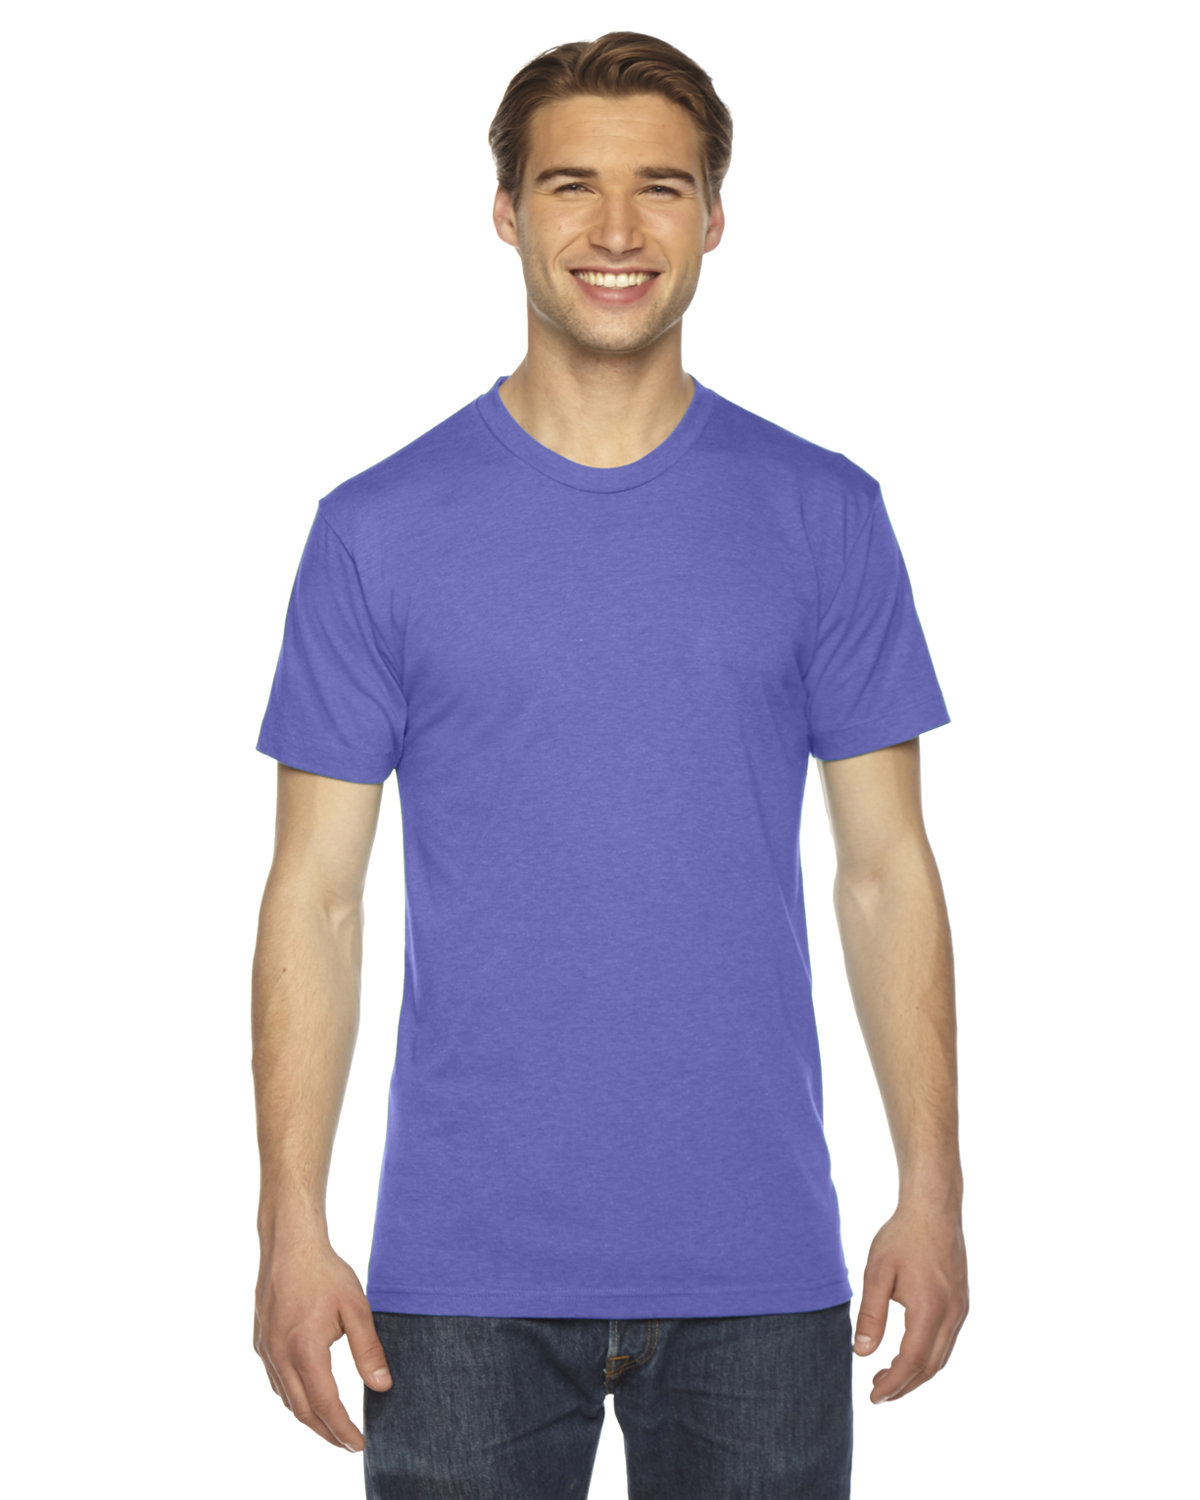 American Apparel Unisex Triblend Short-Sleeve Track T-Shirt TRI ORCHID